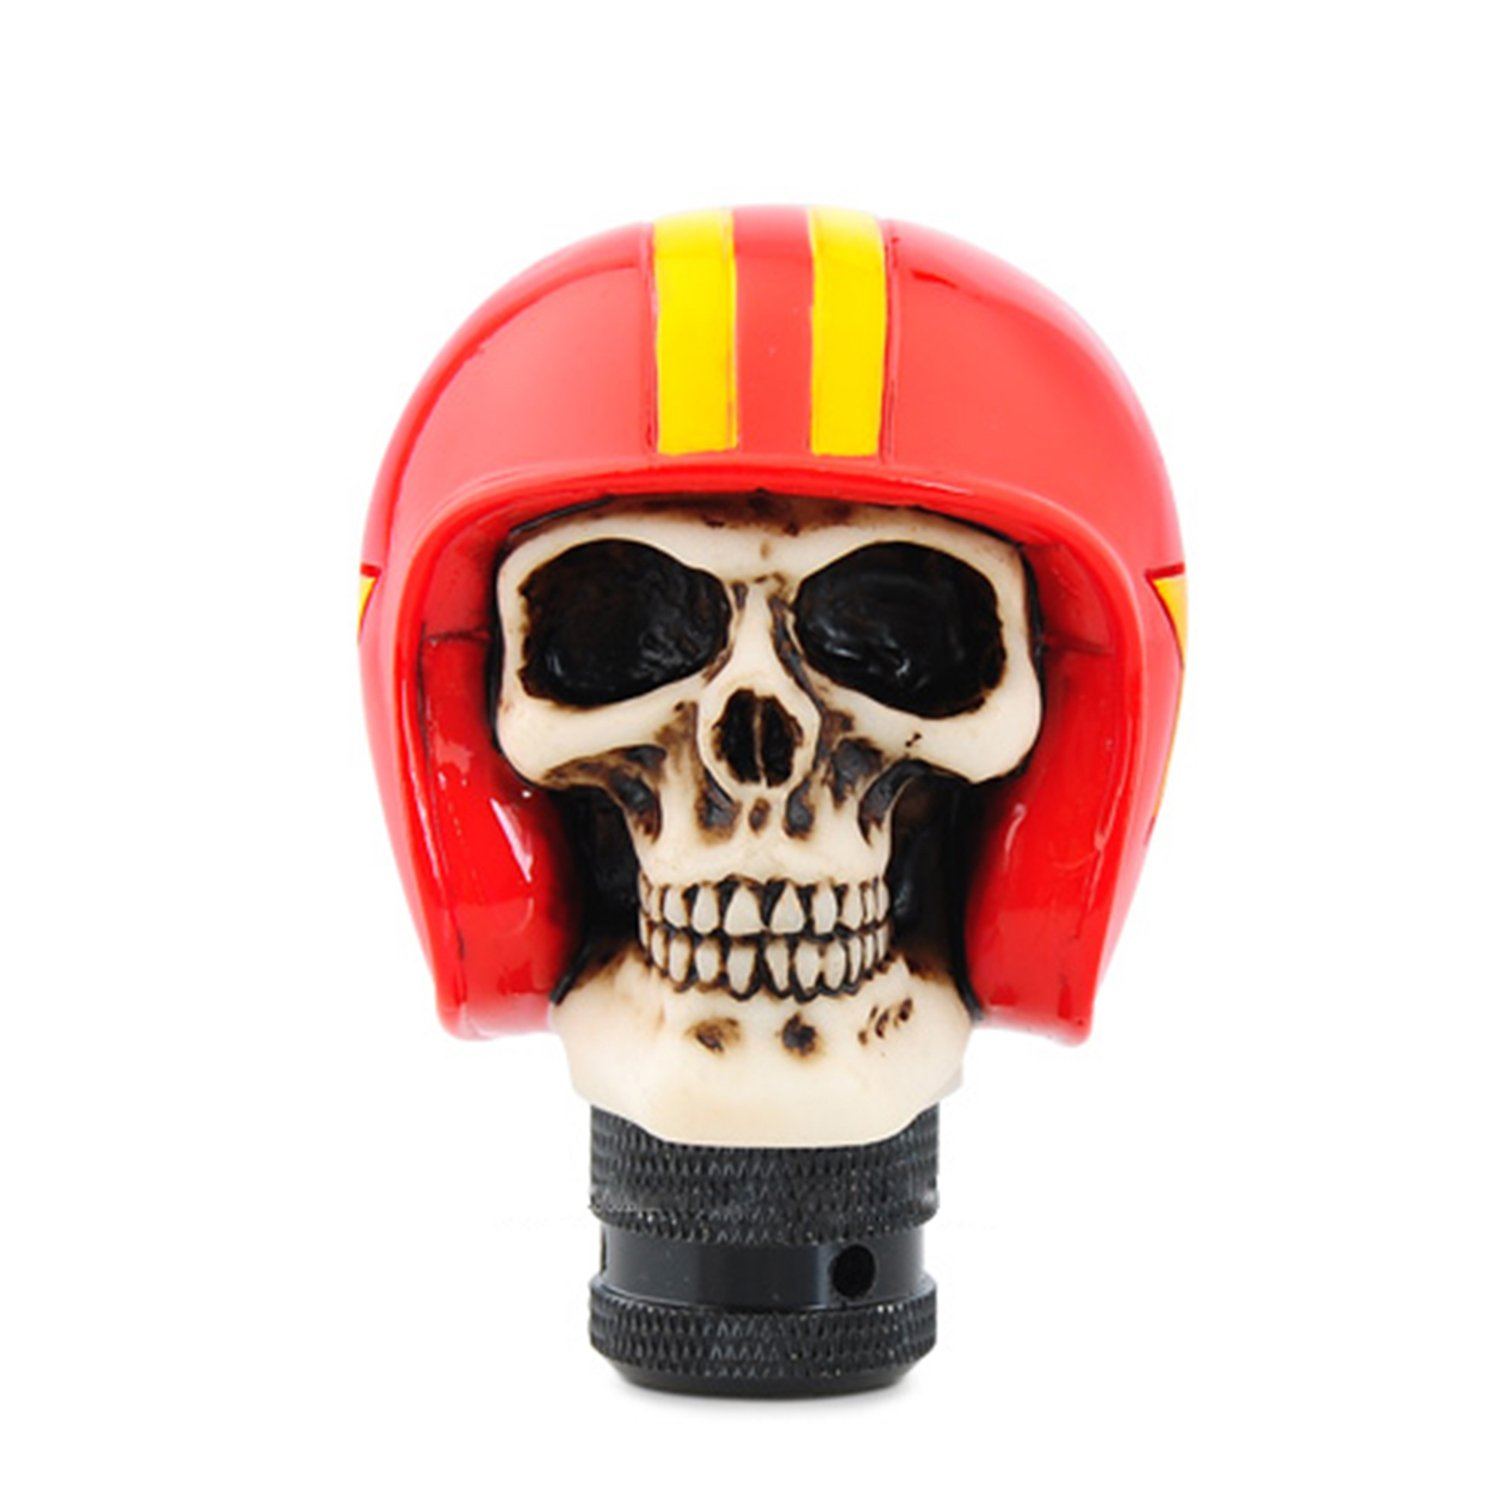 Bashineng Shifter Knobs Skull Shape Head Stick Car Accessories Soldier Hat Gear Universal Knobs Shift